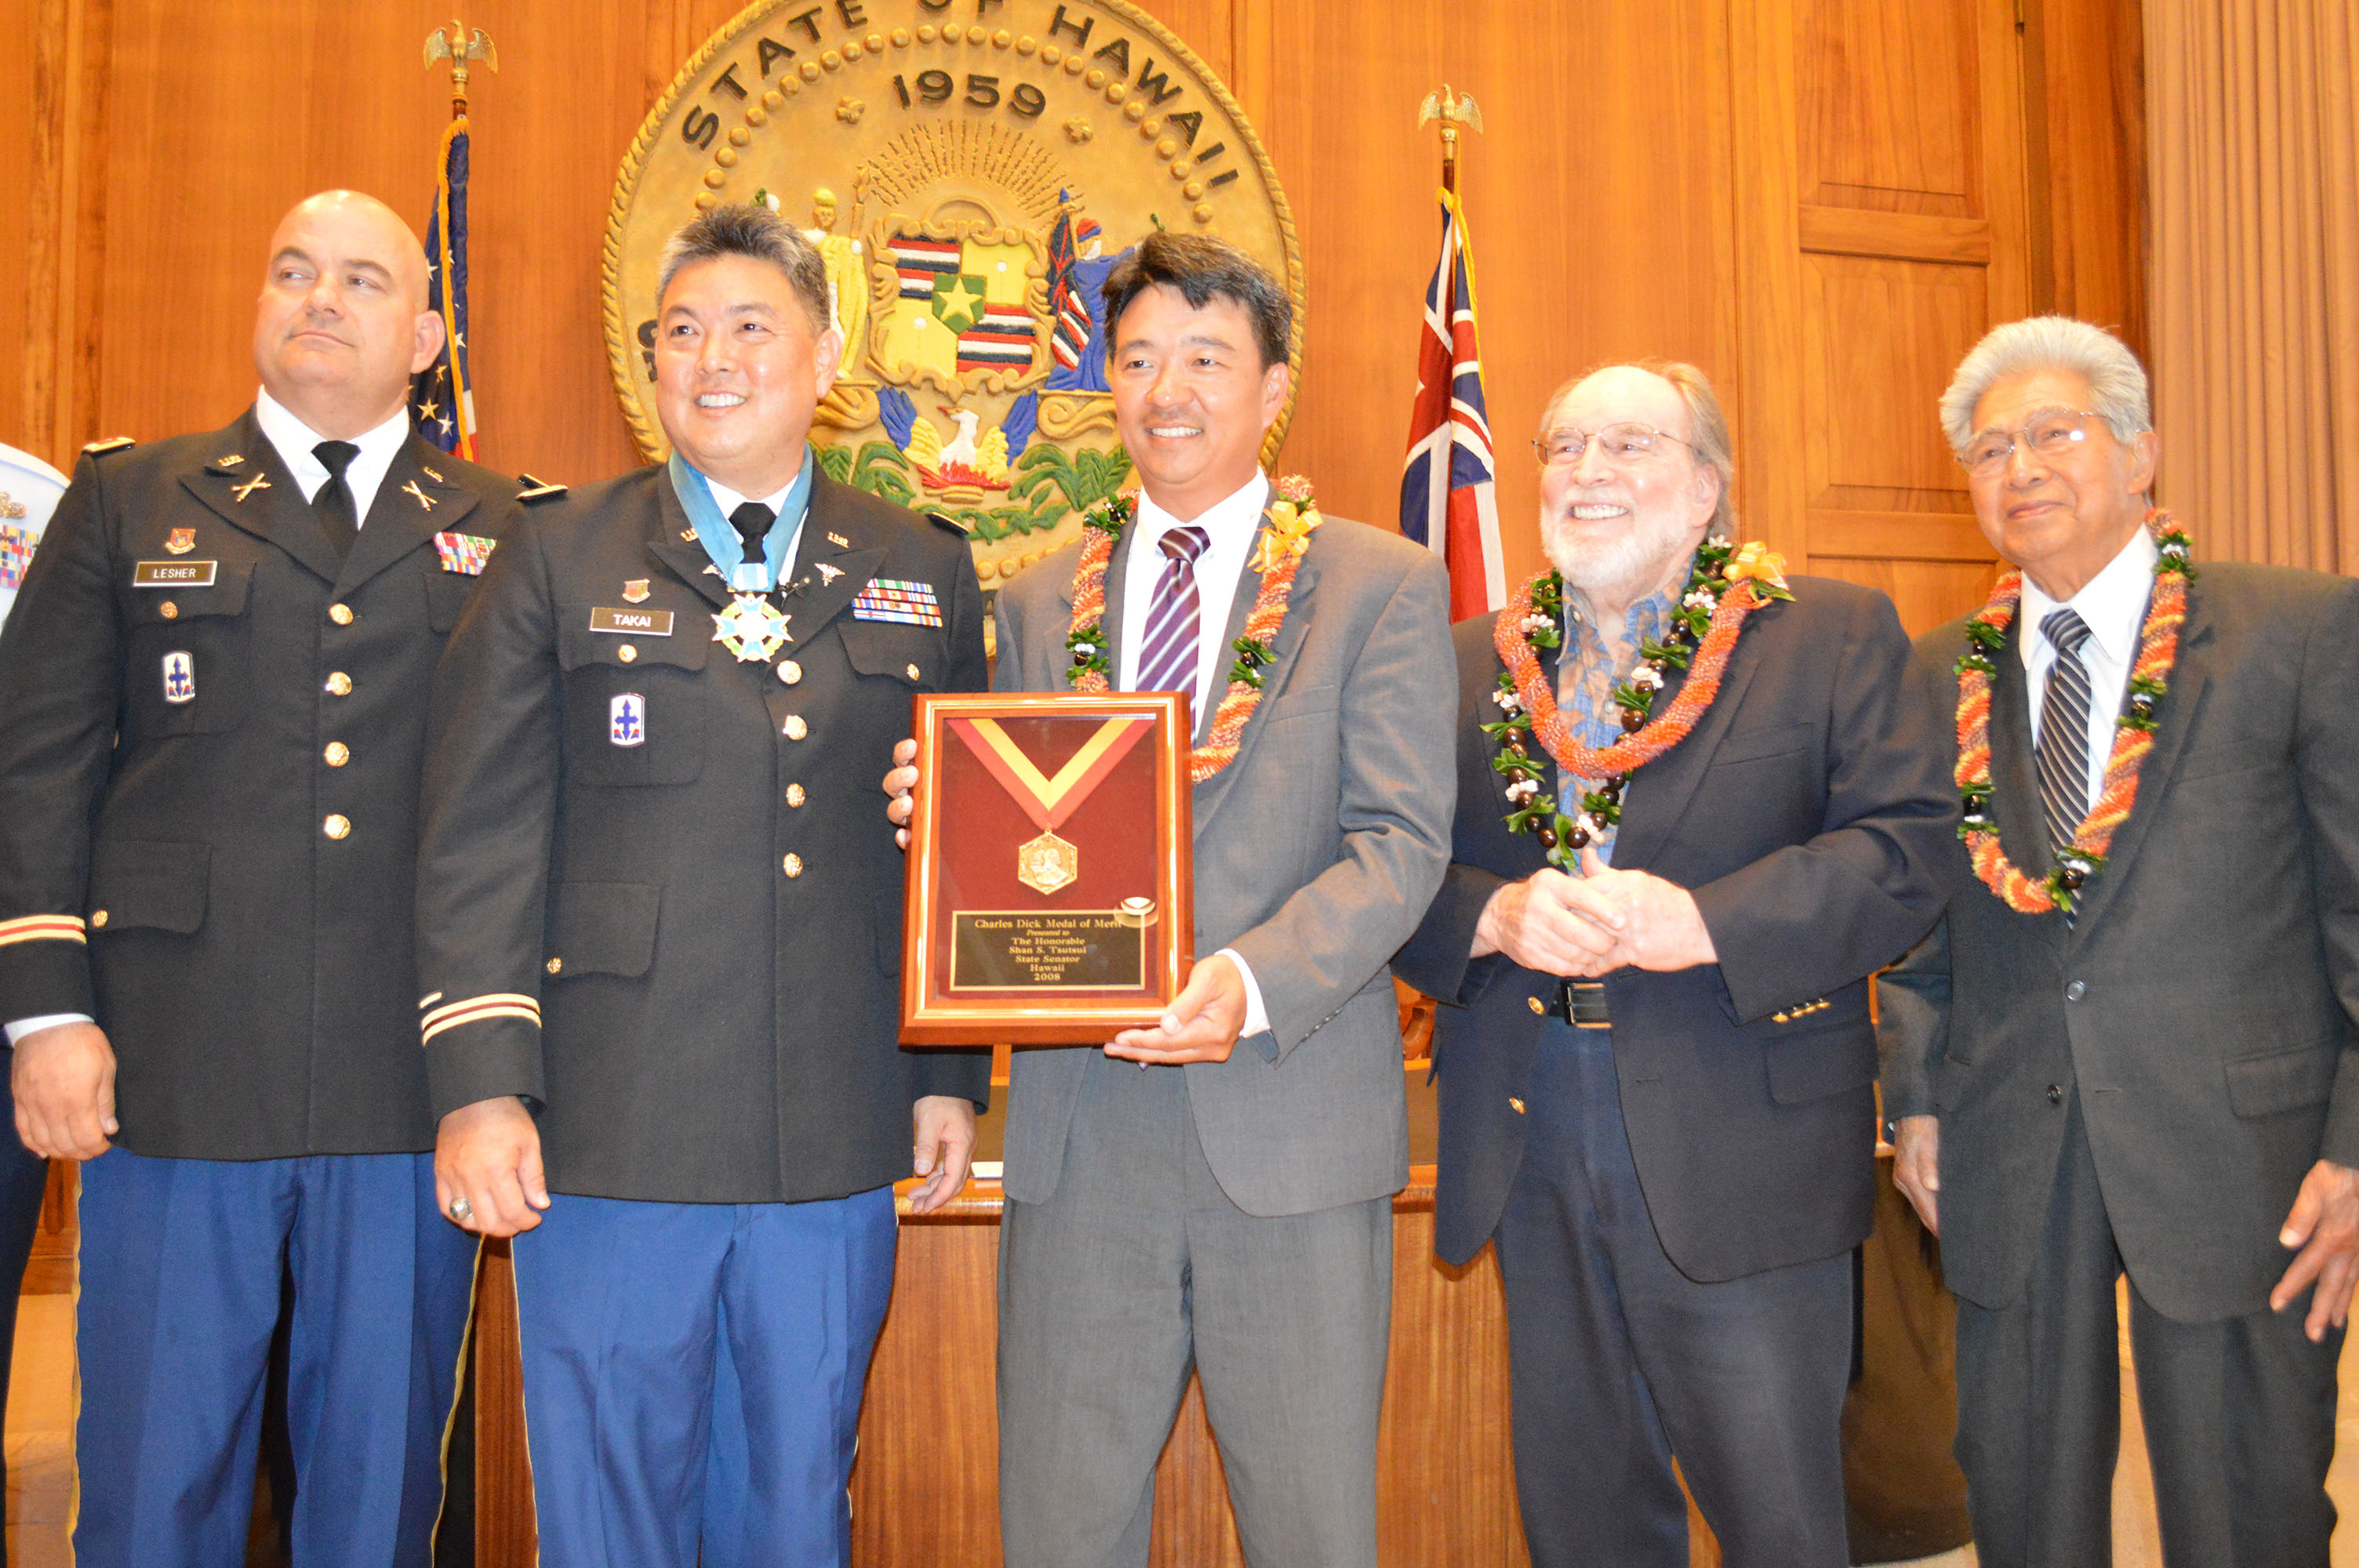 Lt. Gov. Awarded Charles Dick Award